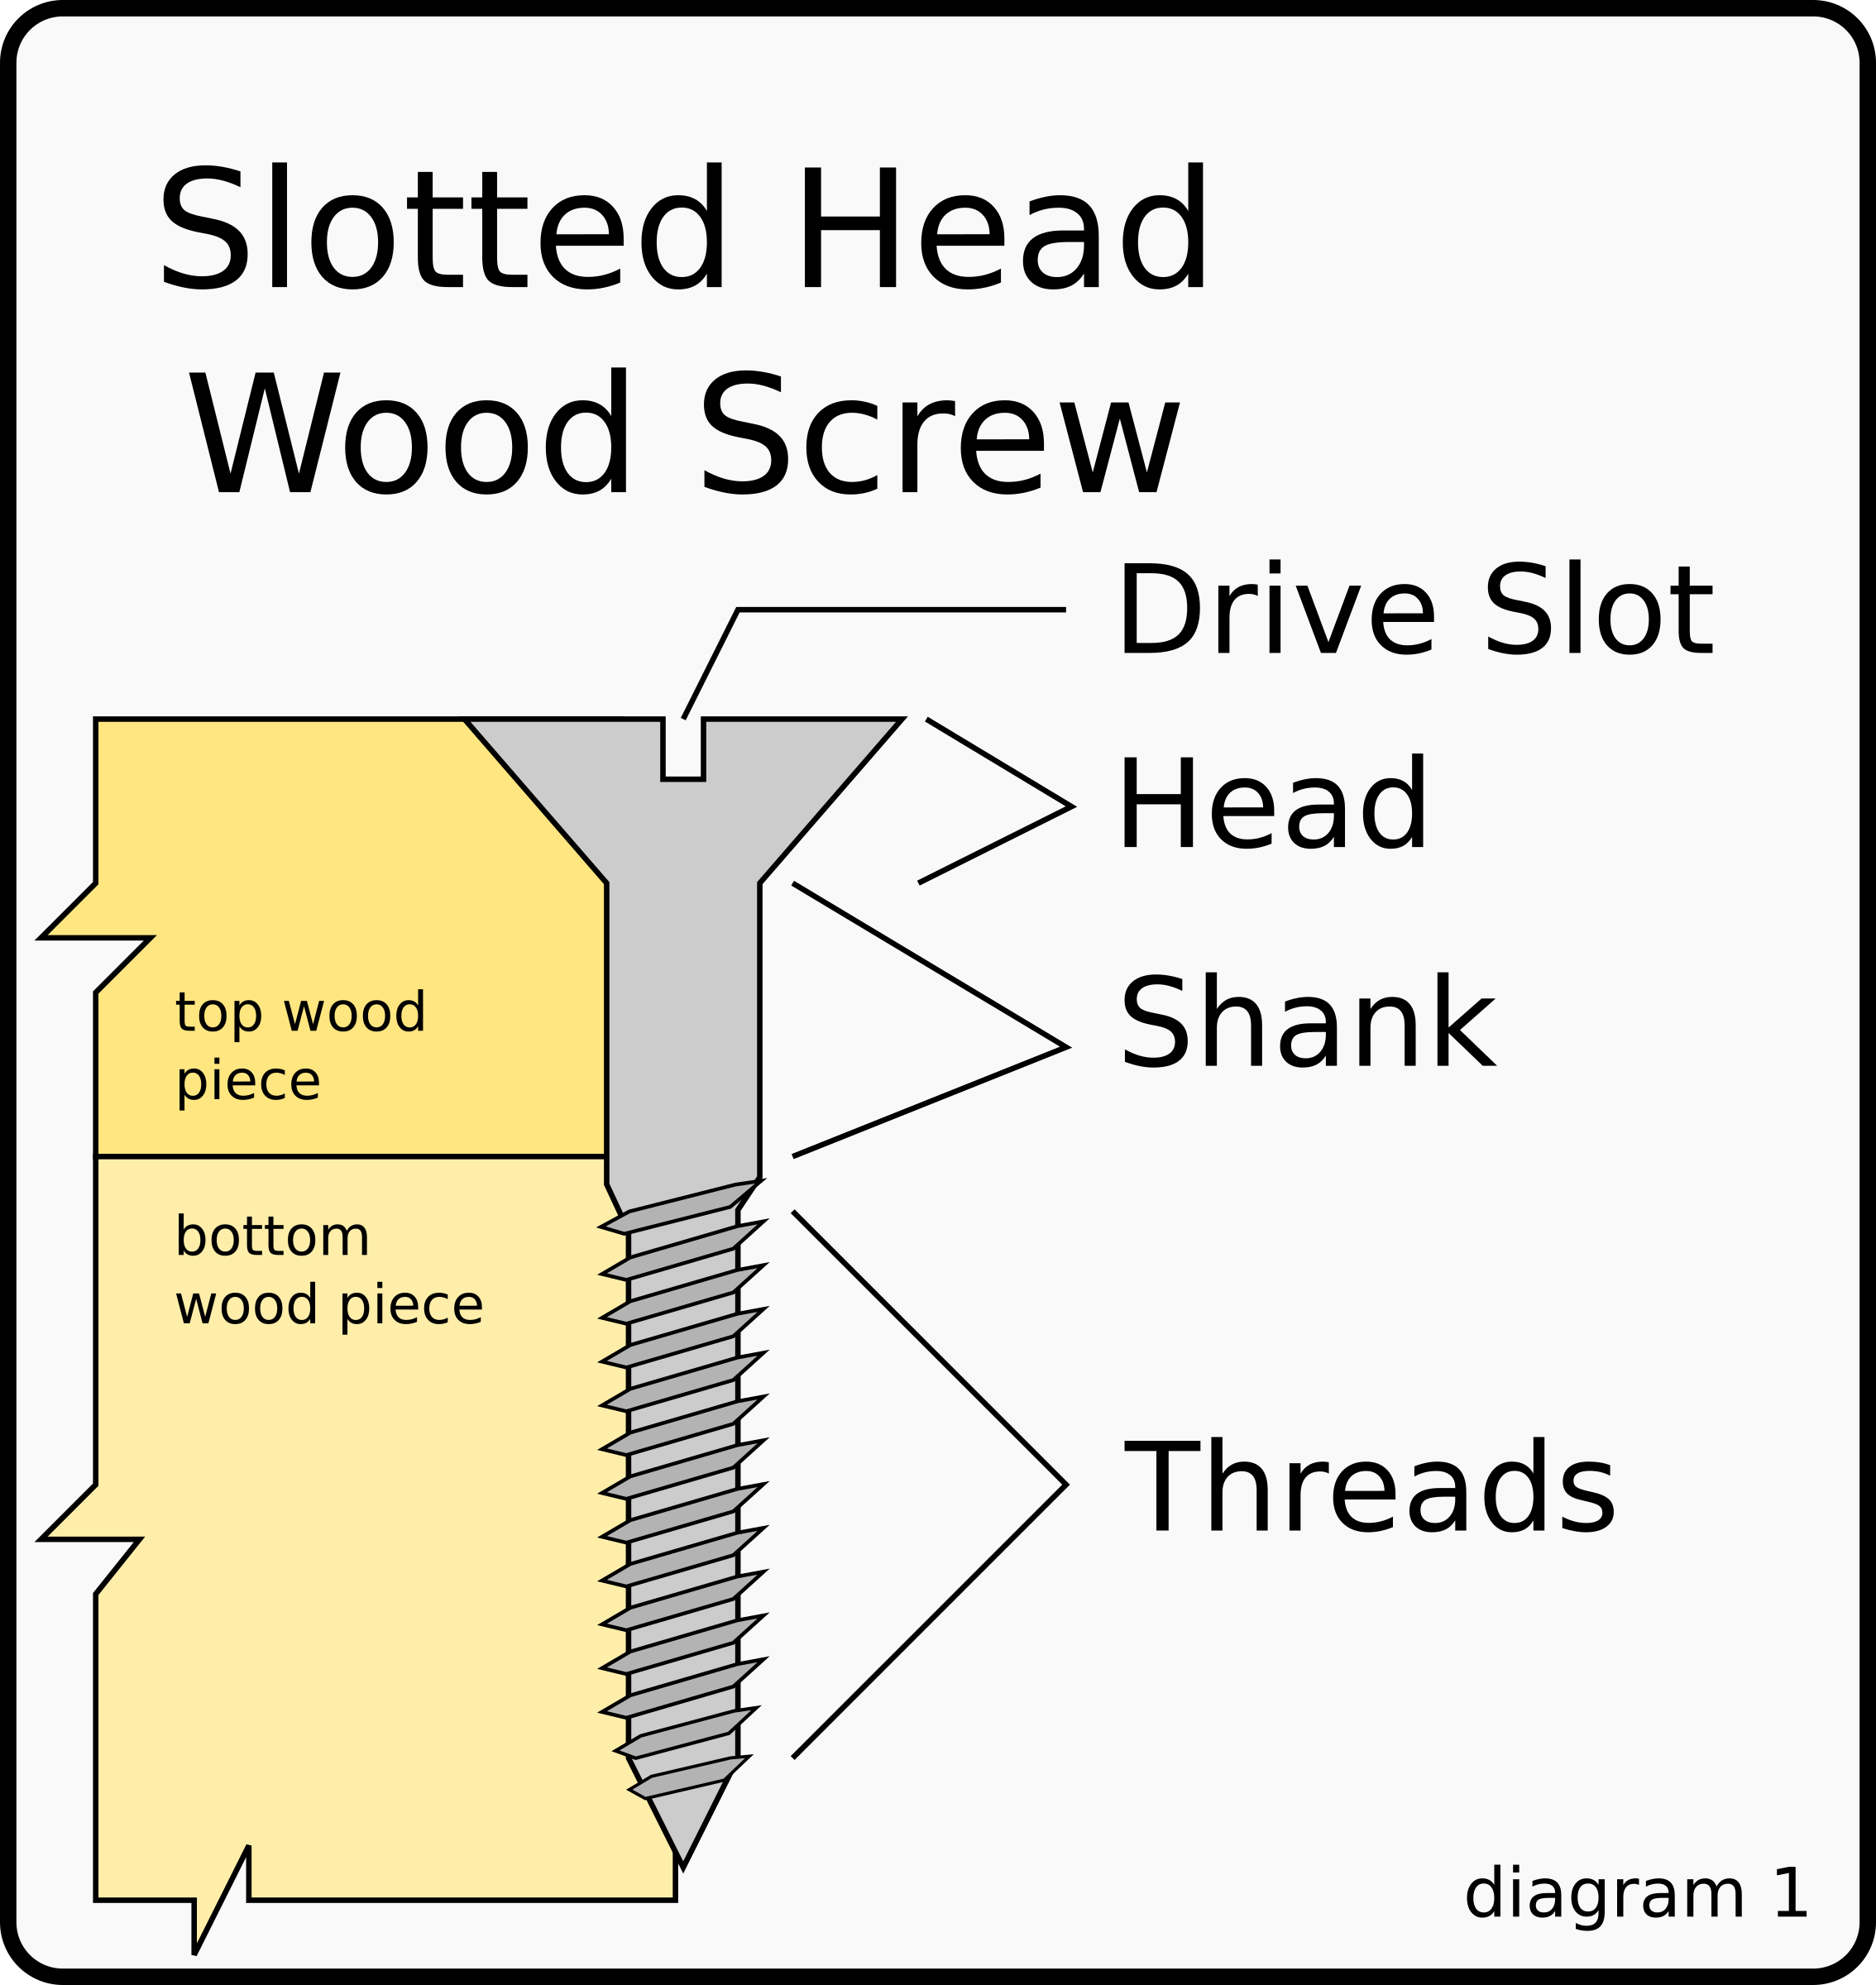 Wood Screw Diagram by algotruneman